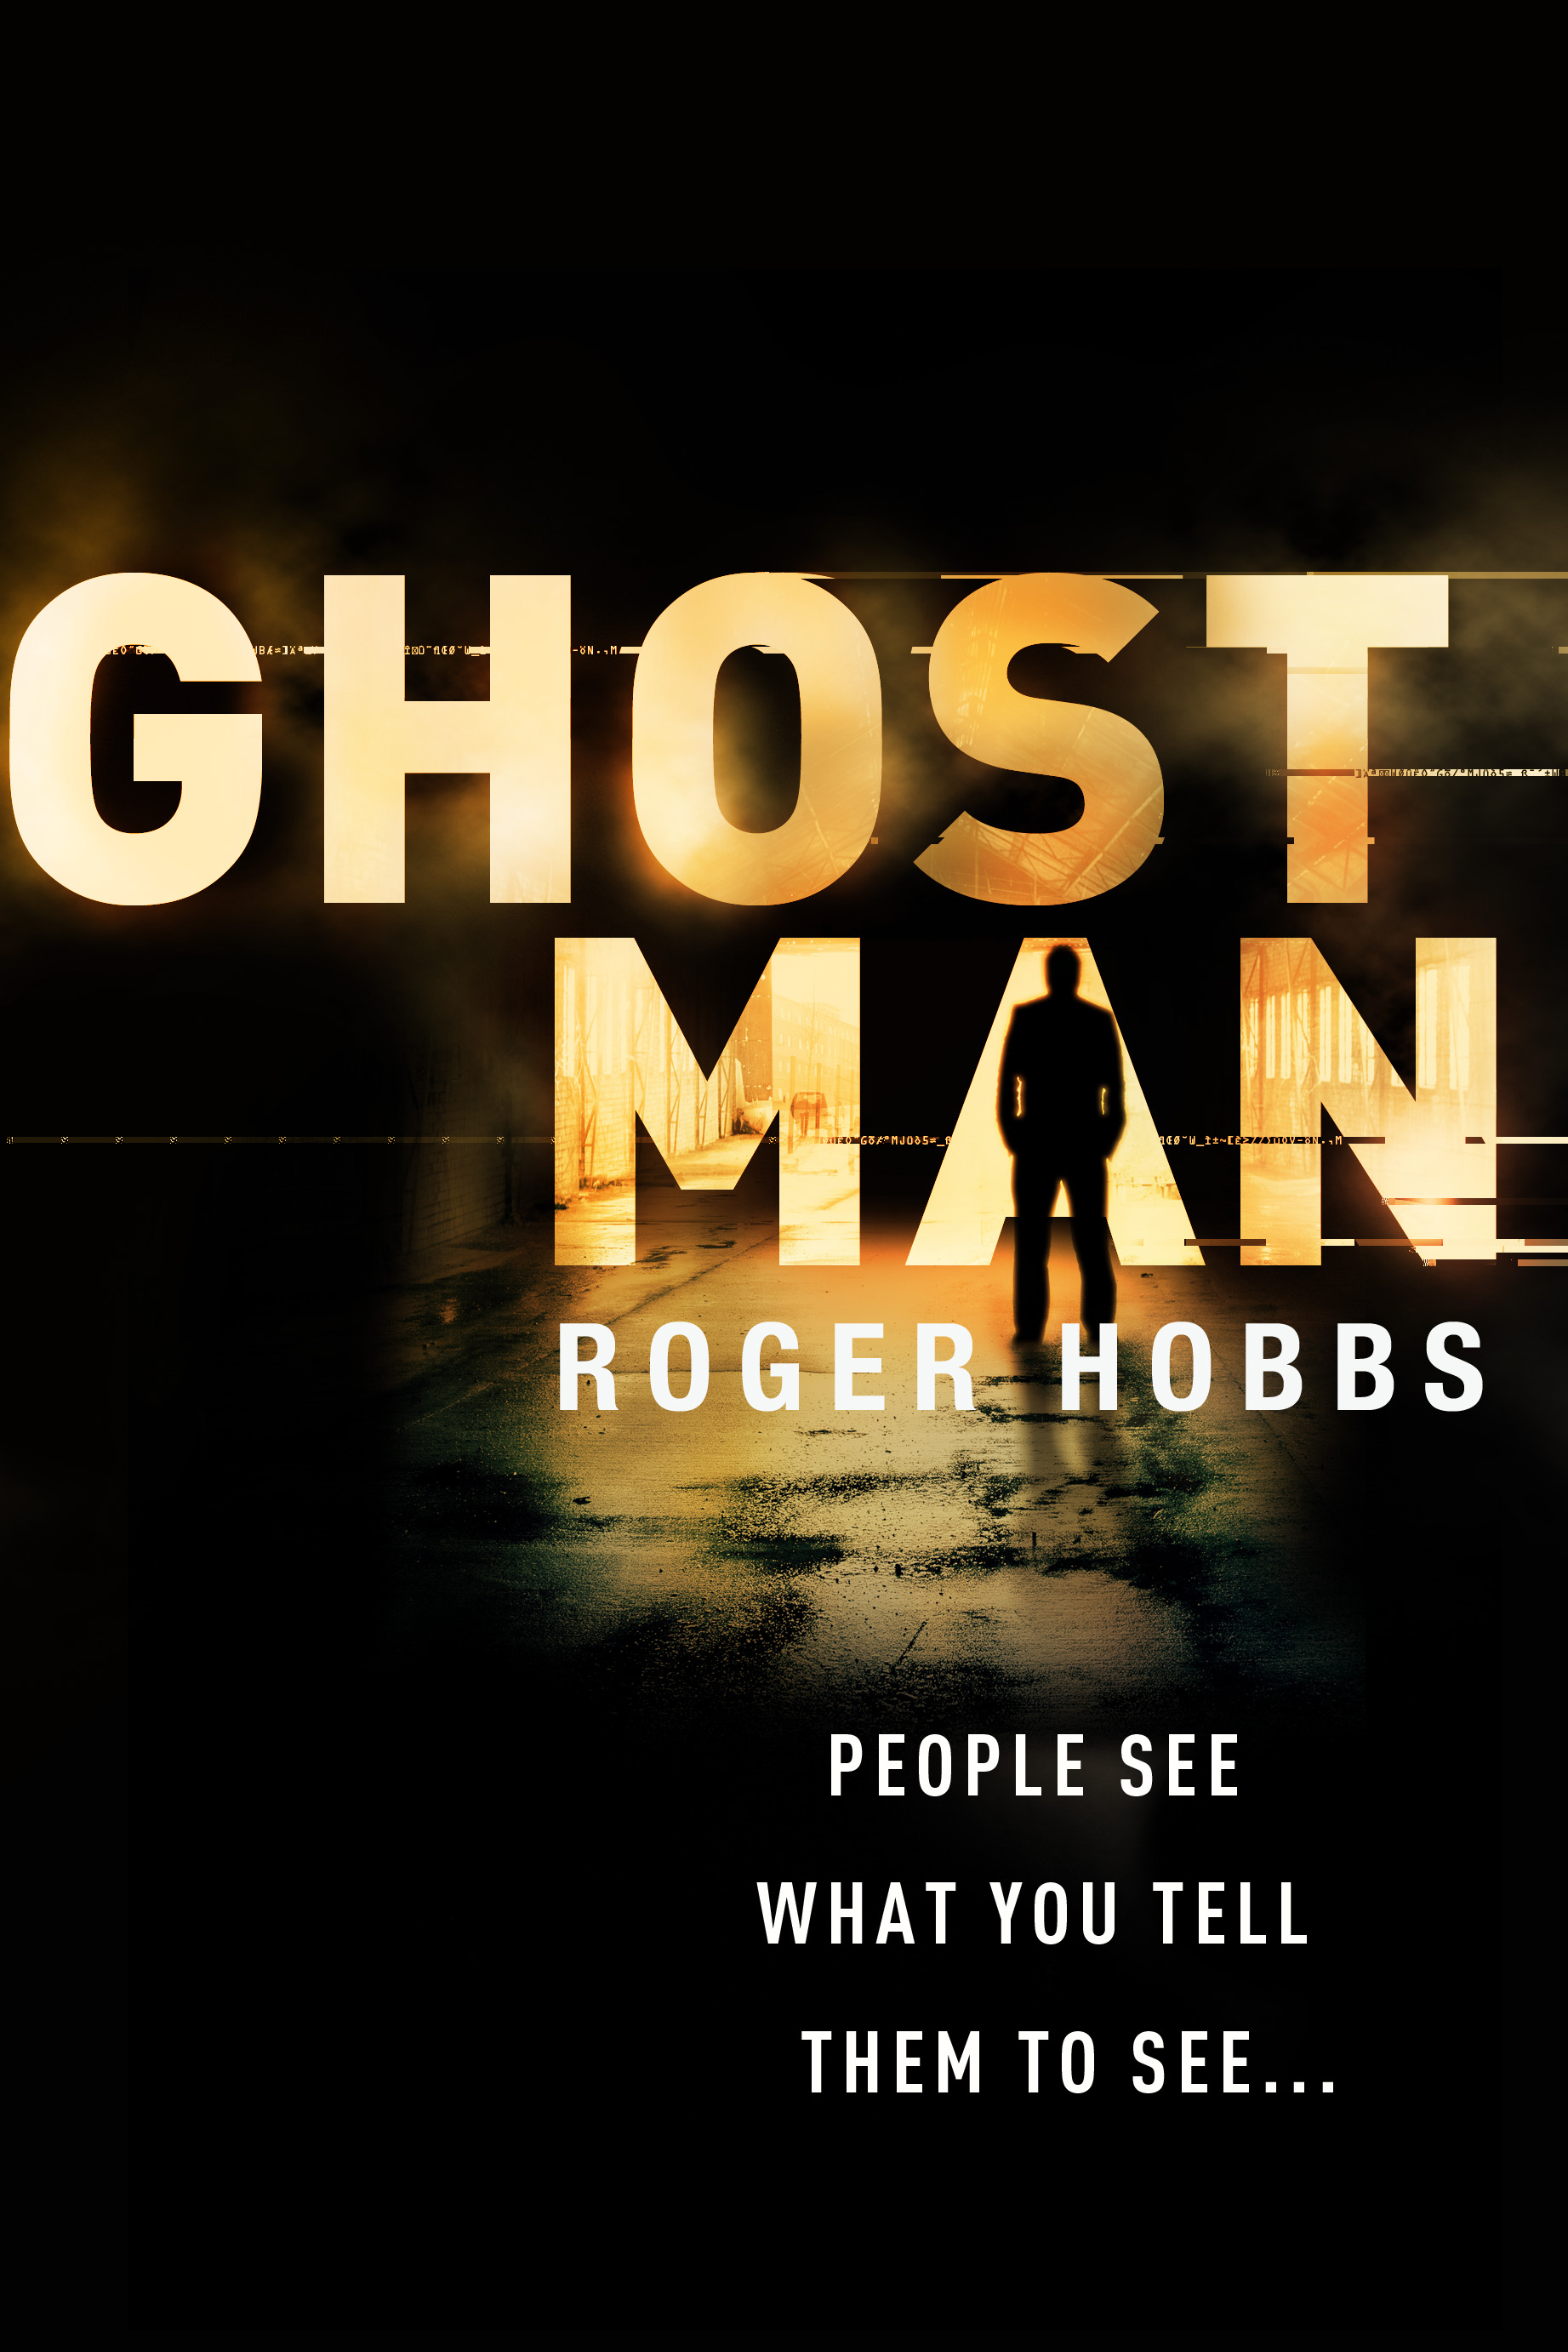 Ghostman Transworld Hardcover